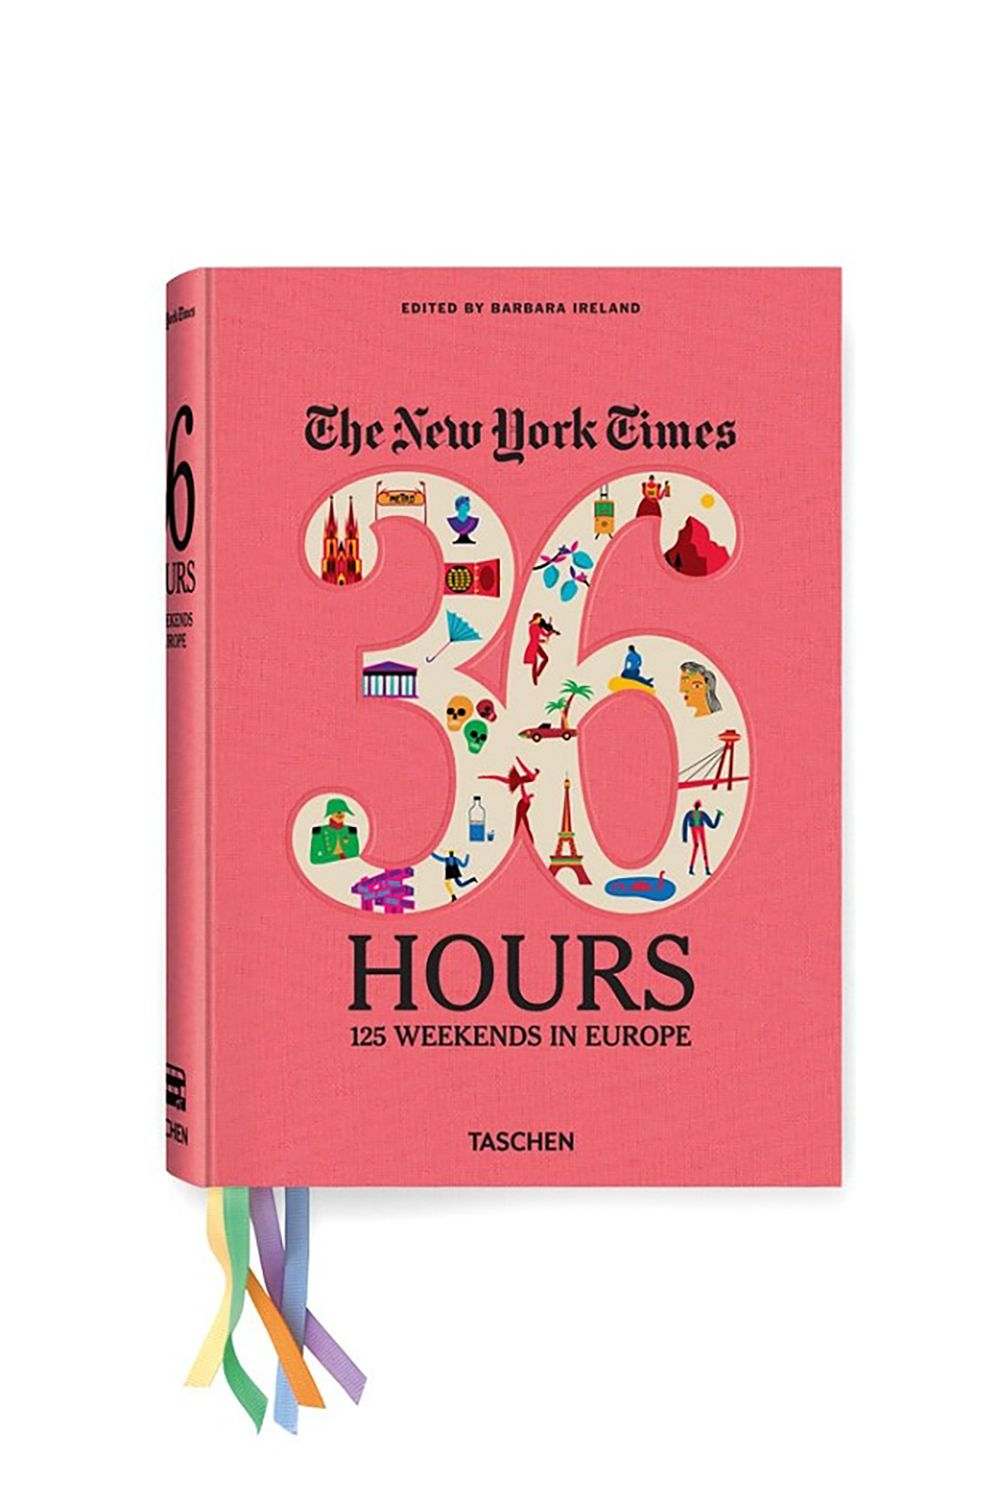 "<p>If you're considering a book purely by its cover, you wouldn't be too remiss to zero in on this one.&nbsp&#x3B;Here, the second edition&nbsp&#x3B;of the New York Time's&nbsp&#x3B;acclaimed travel series ""36 Hours"" transports you to some of&nbsp&#x3B;Europe's best sights. BRB, checking airline prices.&nbsp&#x3B;</p><p><strong data-redactor-tag=""strong"" data-verified=""redactor""><em data-redactor-tag=""em"" data-verified=""redactor"">&nbsp&#x3B;New York Times 36 Hours. Europe</em> (Second Edition), $40&#x3B;<a href=""https://www.taschen.com/pages/en/catalogue/lifestyle/all/04651/facts.nyt_36_hours_europe_2nd_edition.htm"" target=""_blank"">taschen.com</a>.&nbsp&#x3B;</strong></p>"